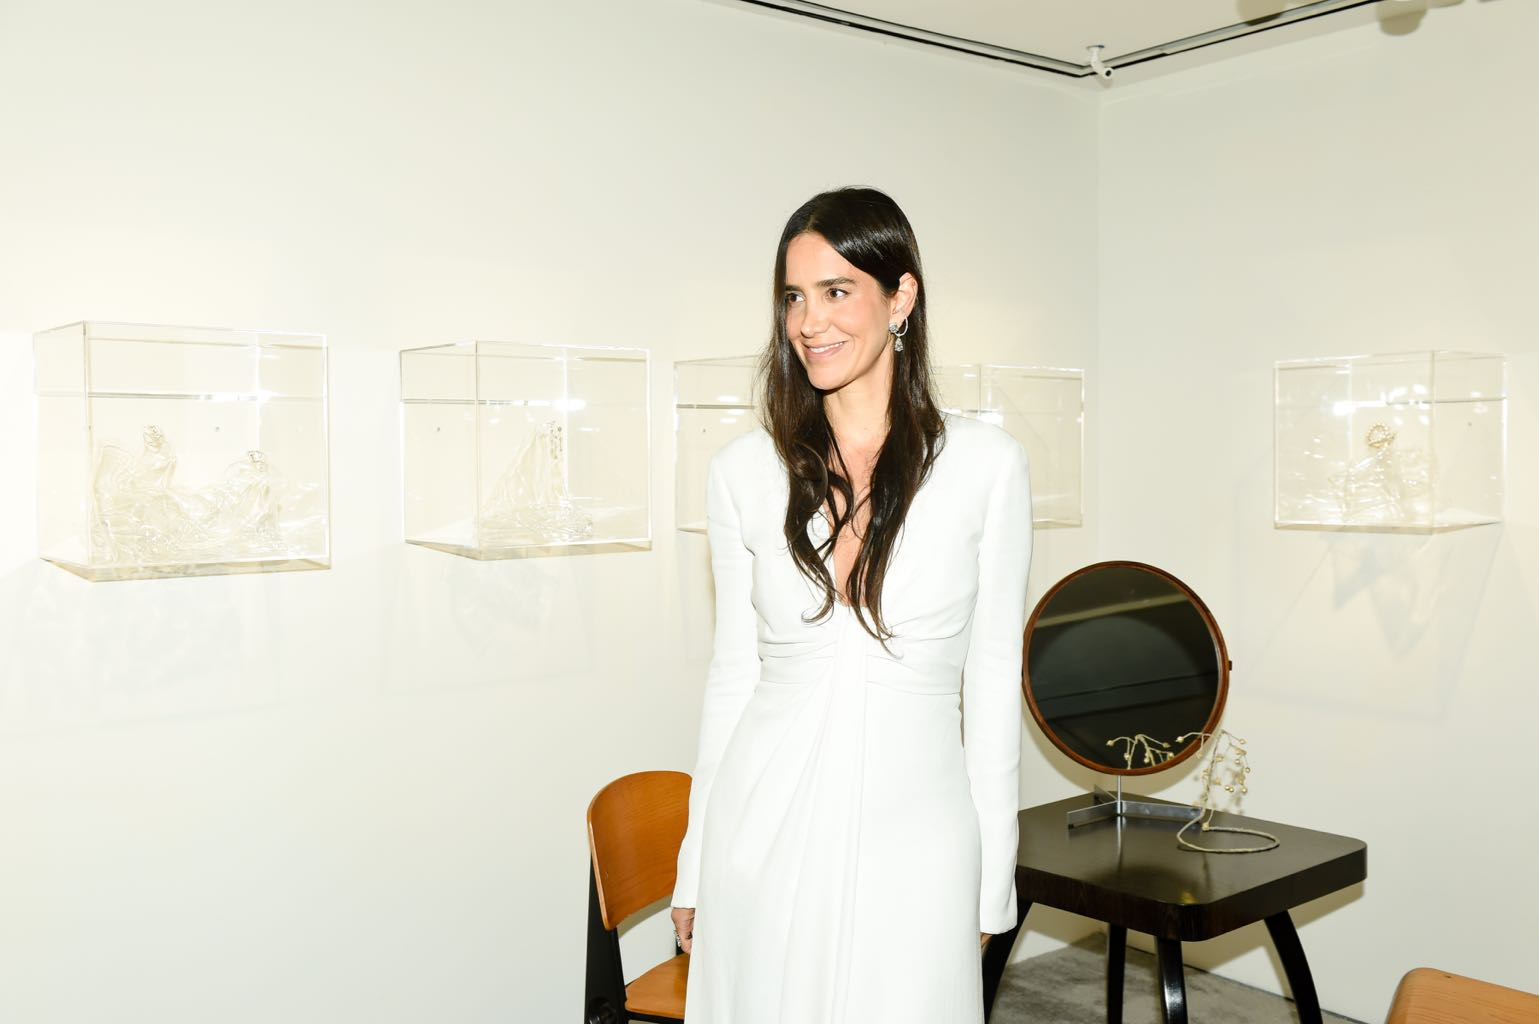 Jewelry designer Ana Khouri at her Phillips exhibition in New York on September 13, 2018. Photo BFA